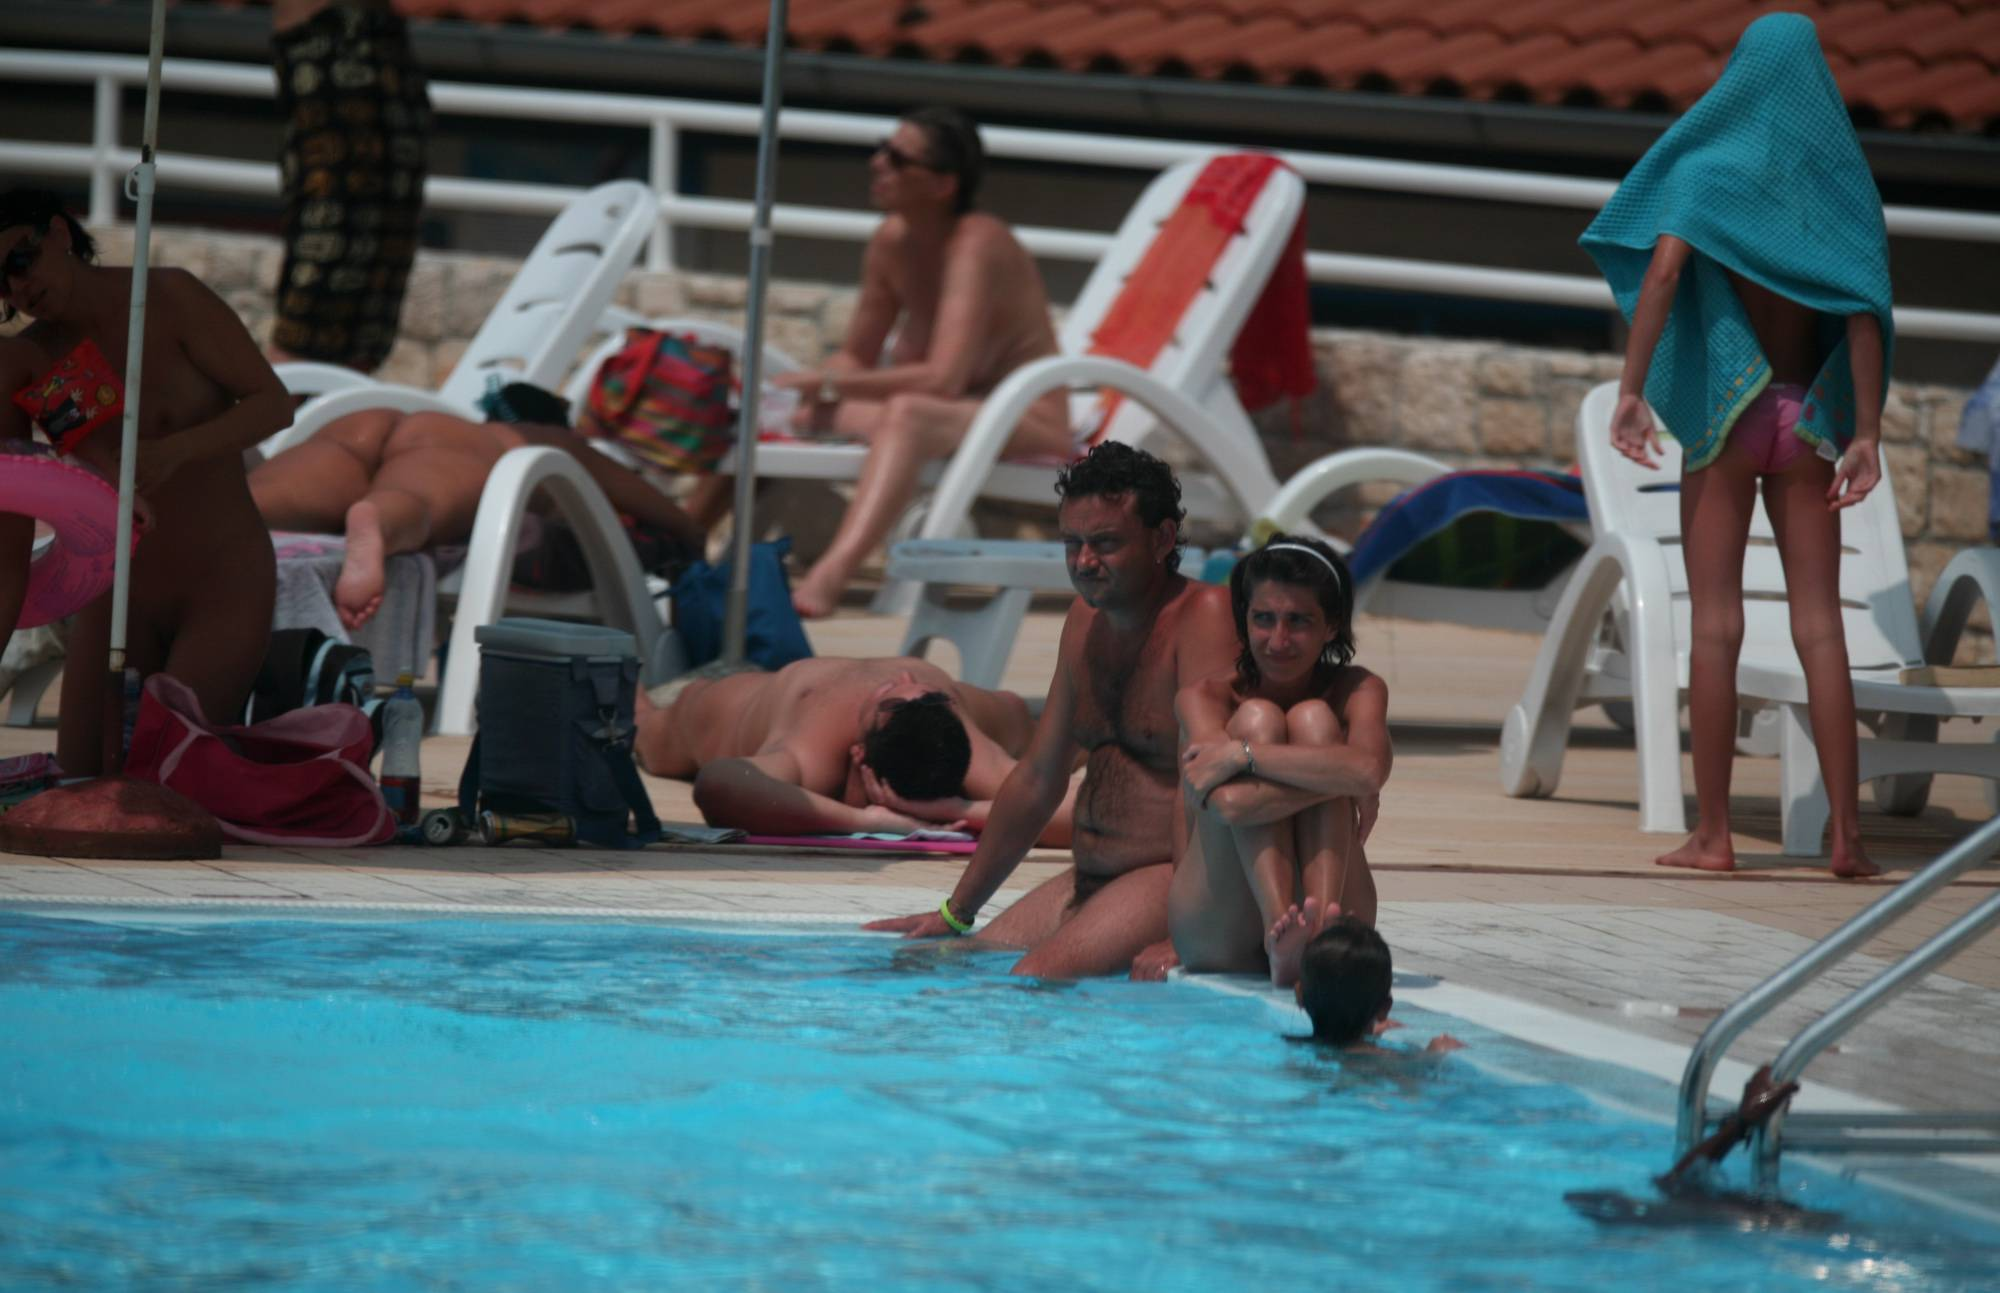 Naturist Pool Youngsters - 2